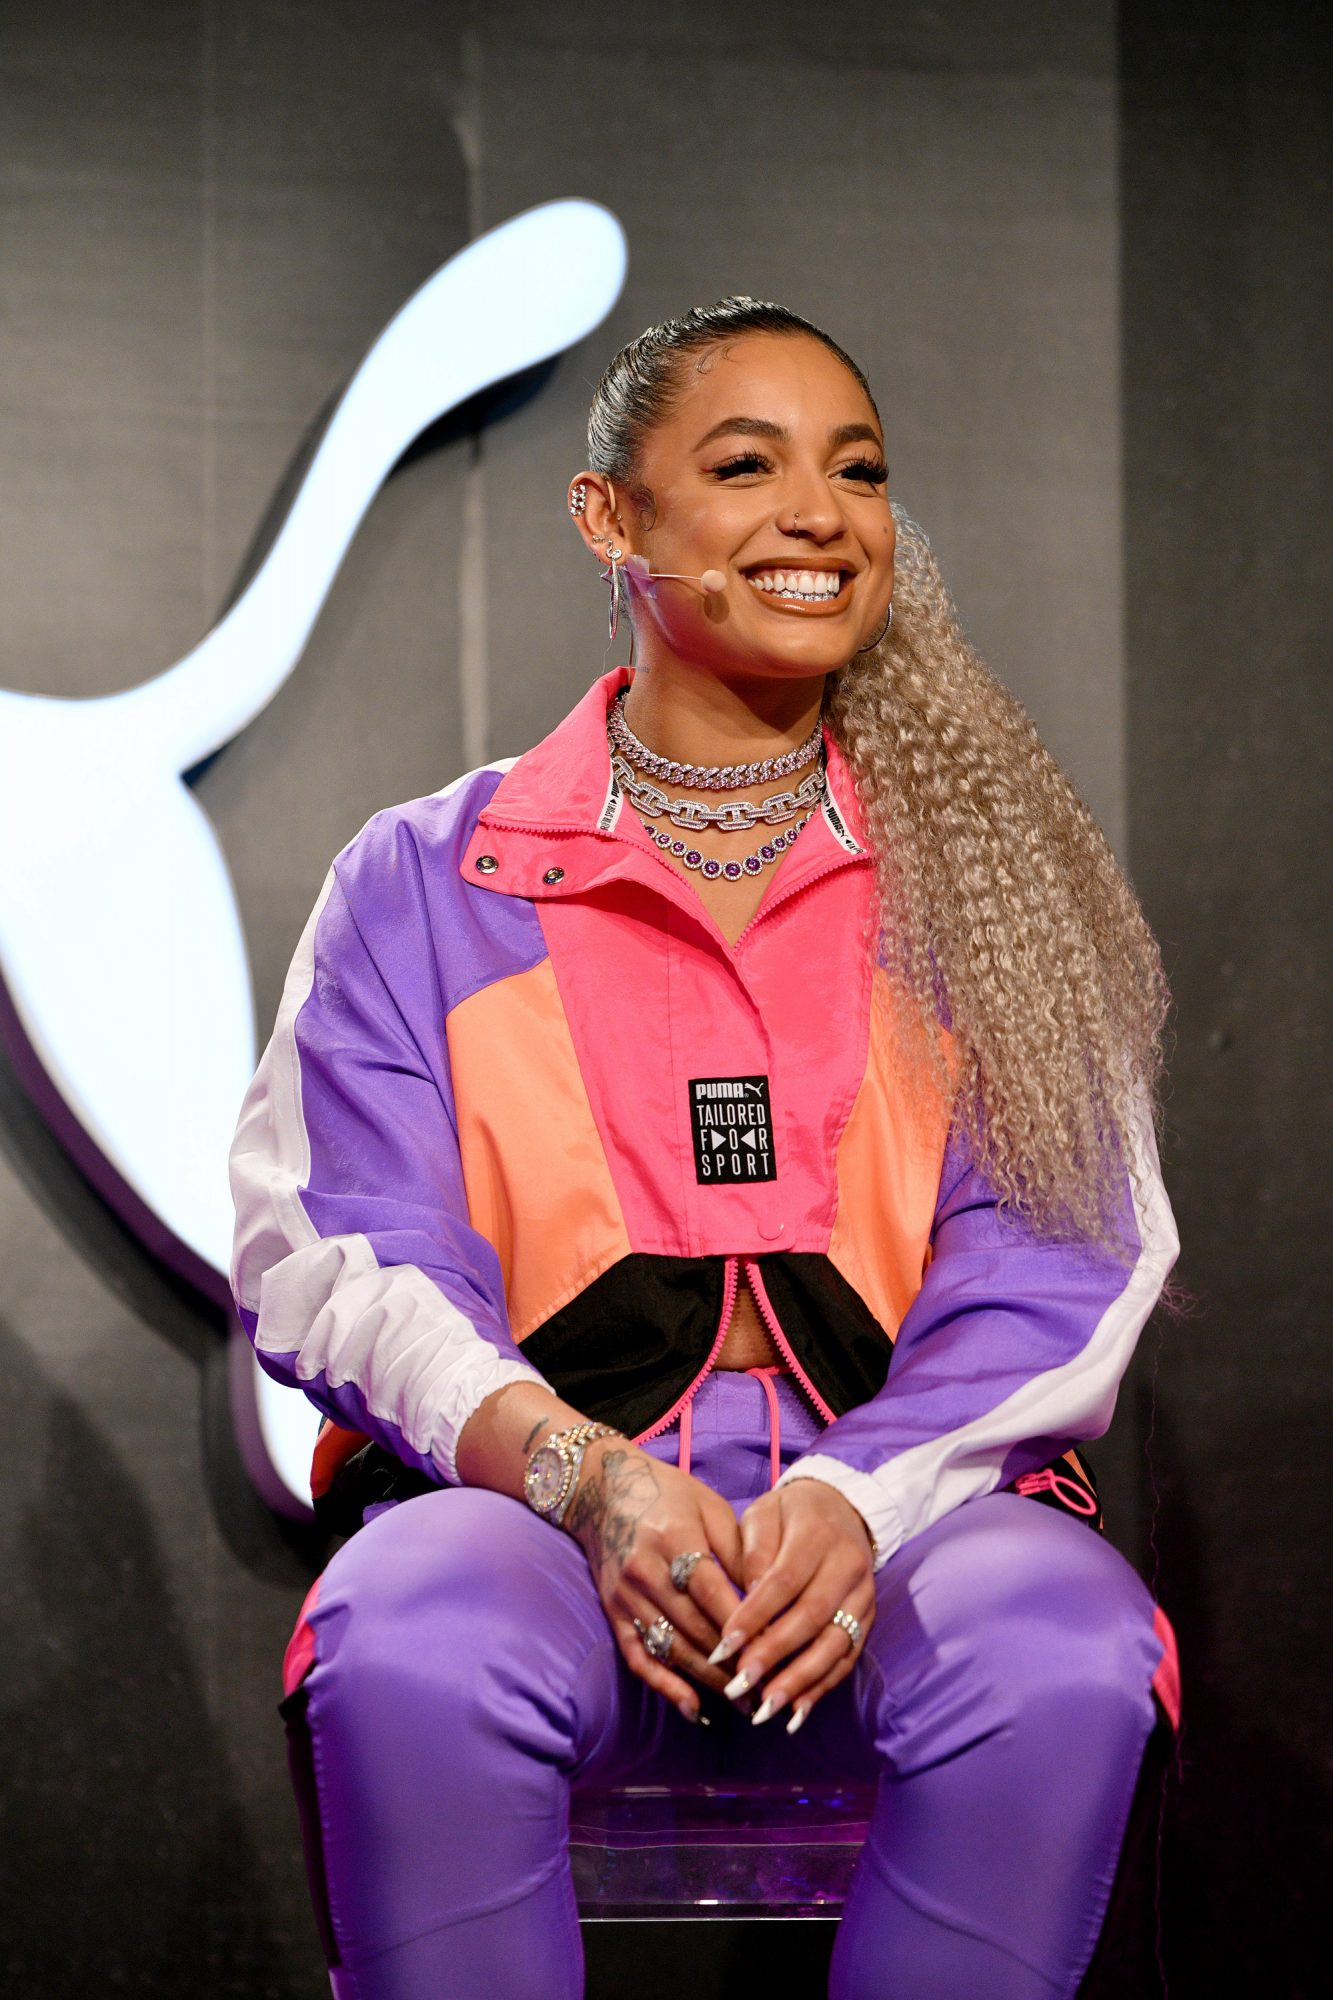 Puma Women's Spring 2020 Launch Event